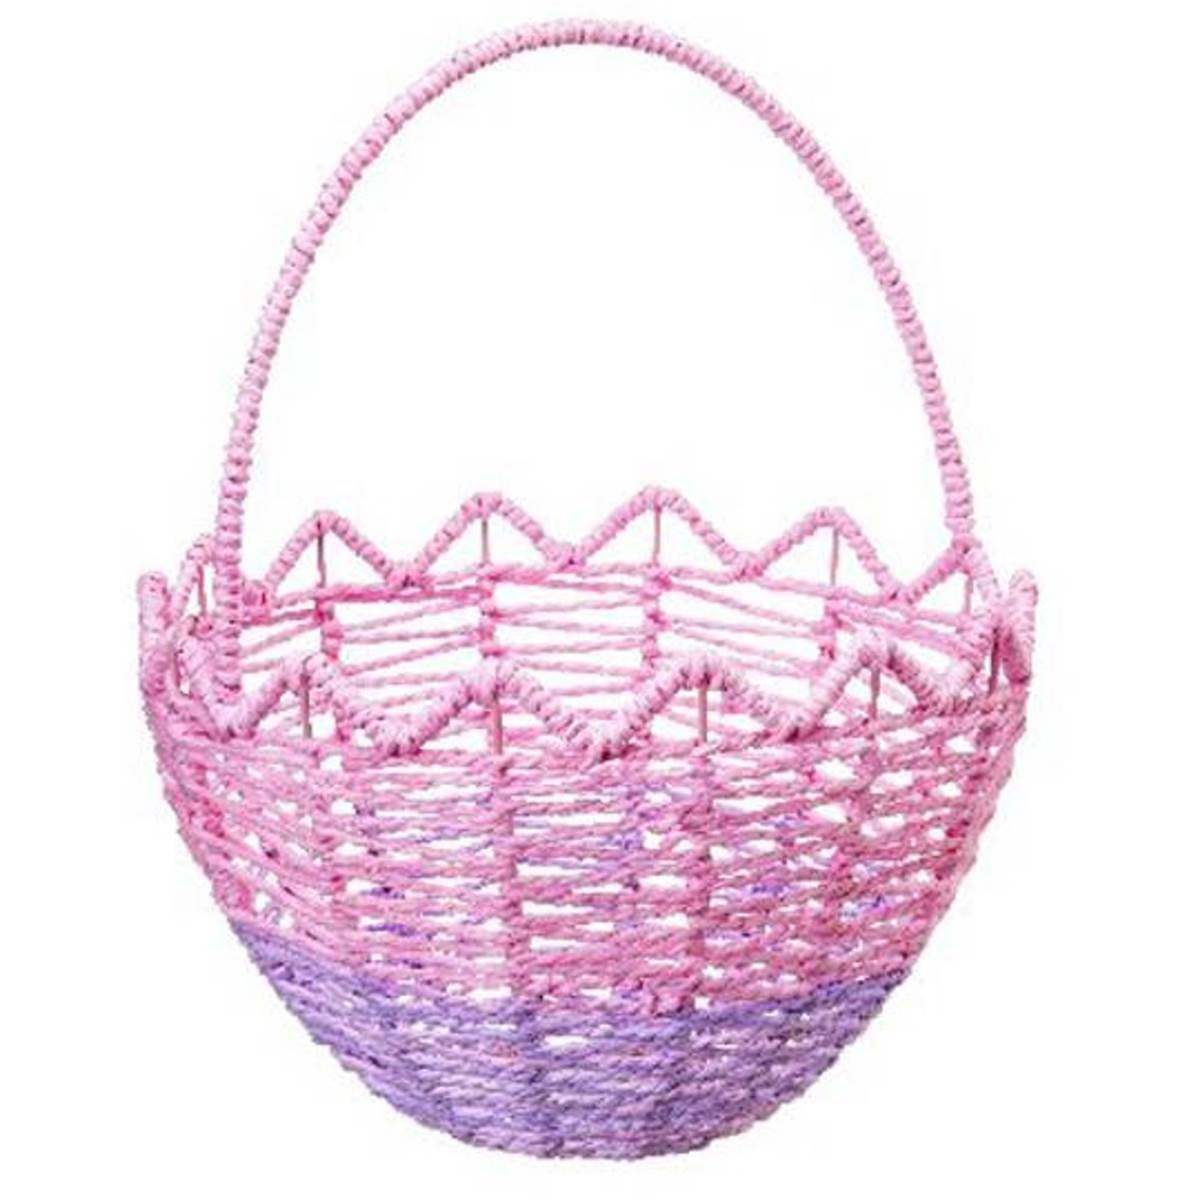 Woolworths easter egg string basket large each woolworths image gallery negle Choice Image